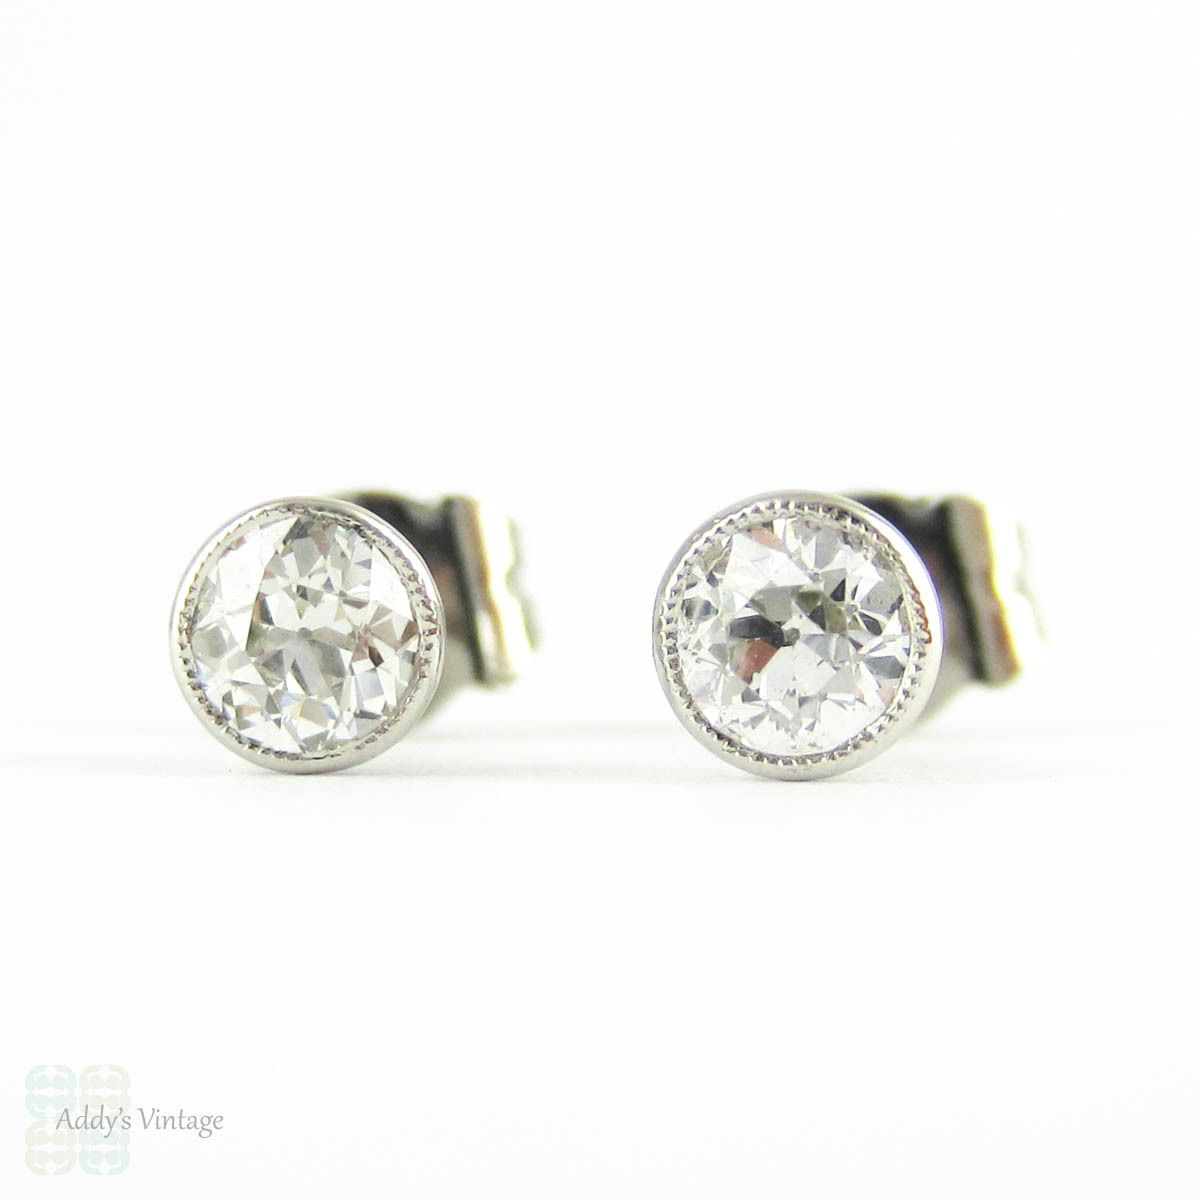 Old European Cut Diamonds Platinum Bezel Set Diamond Stud Earrings 0 52 Ctw With Milgrain Beaded Edges